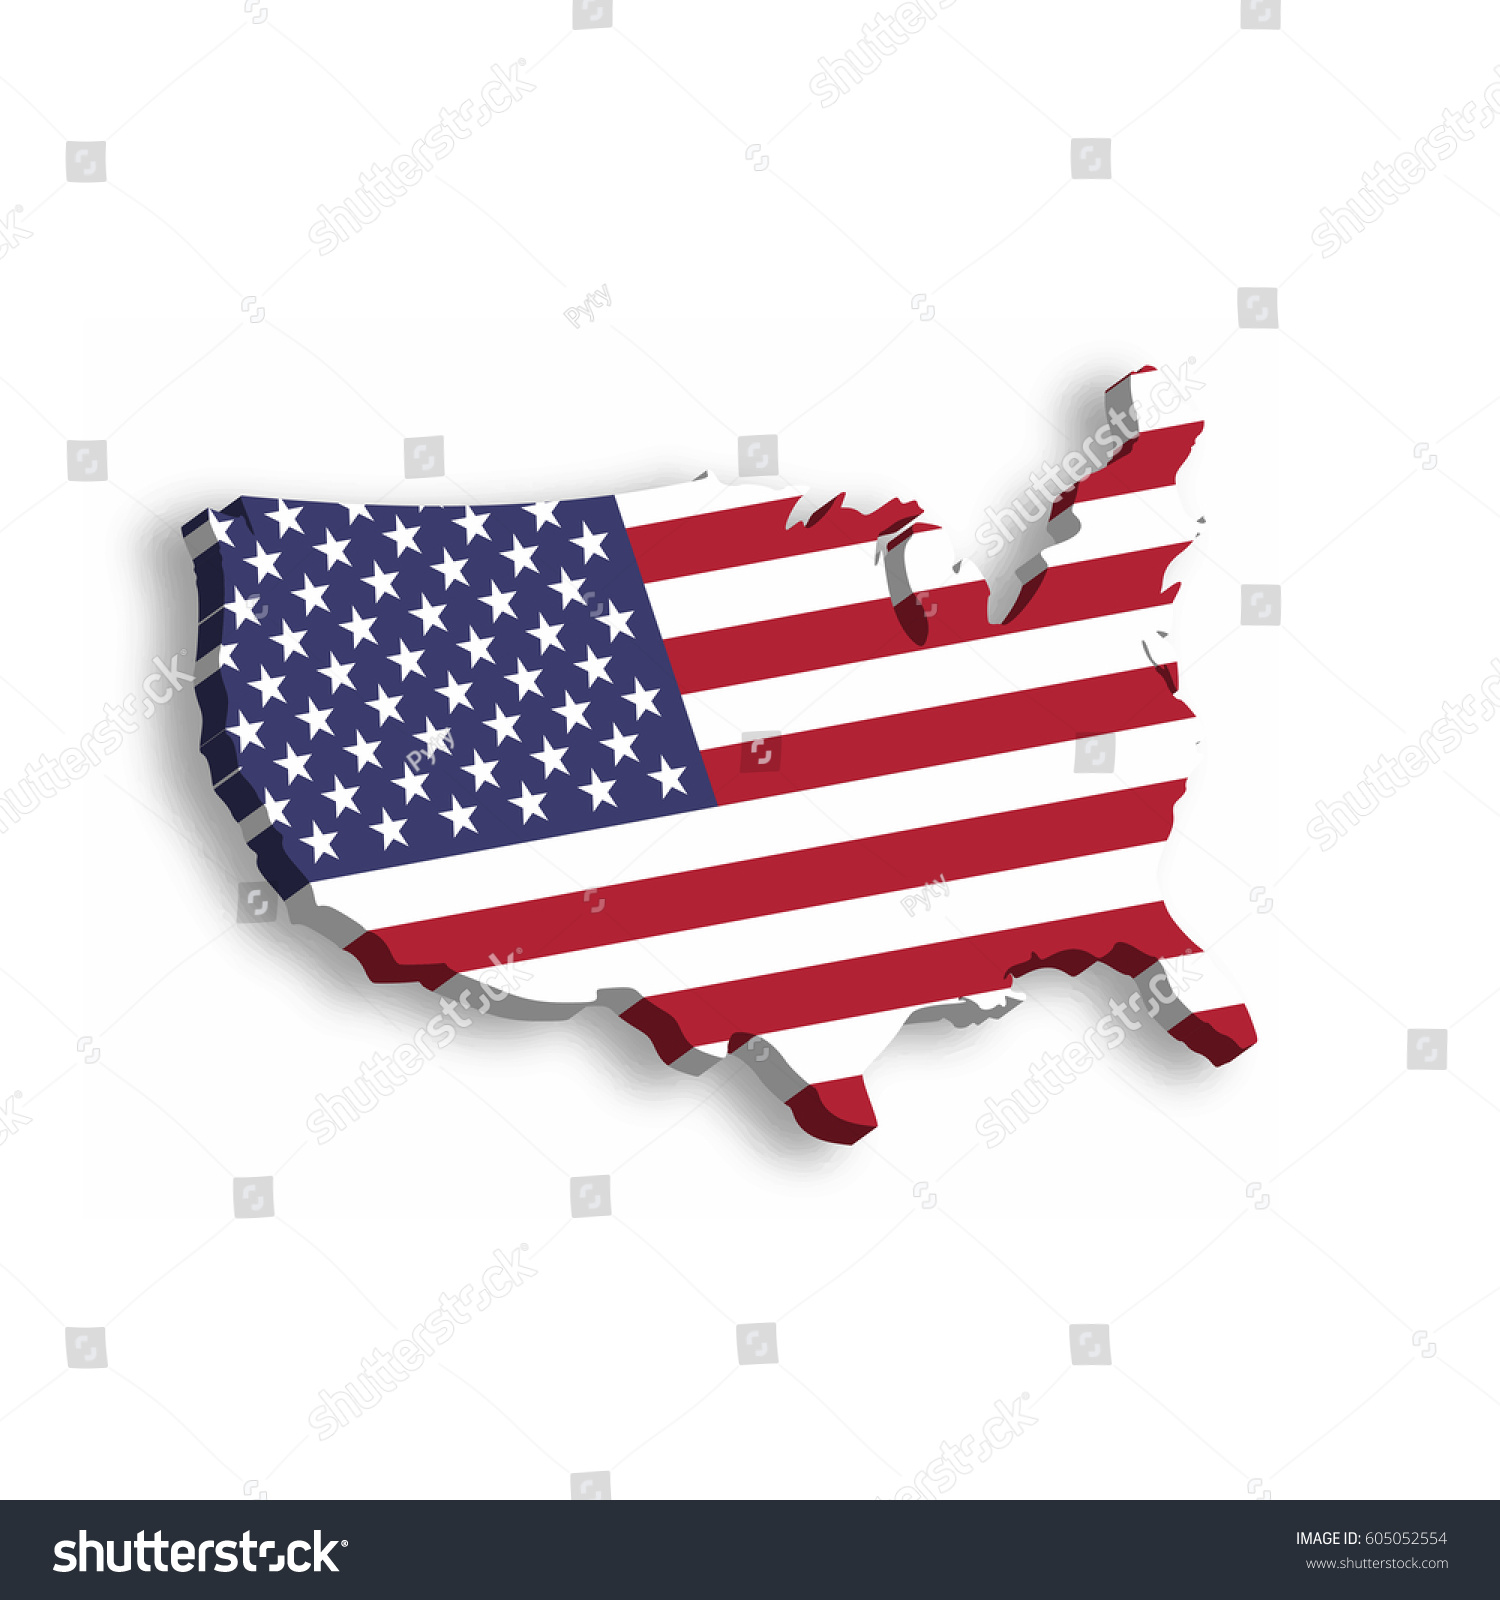 D Map Usa Aka United States Stock Vector Shutterstock - Pics of us map